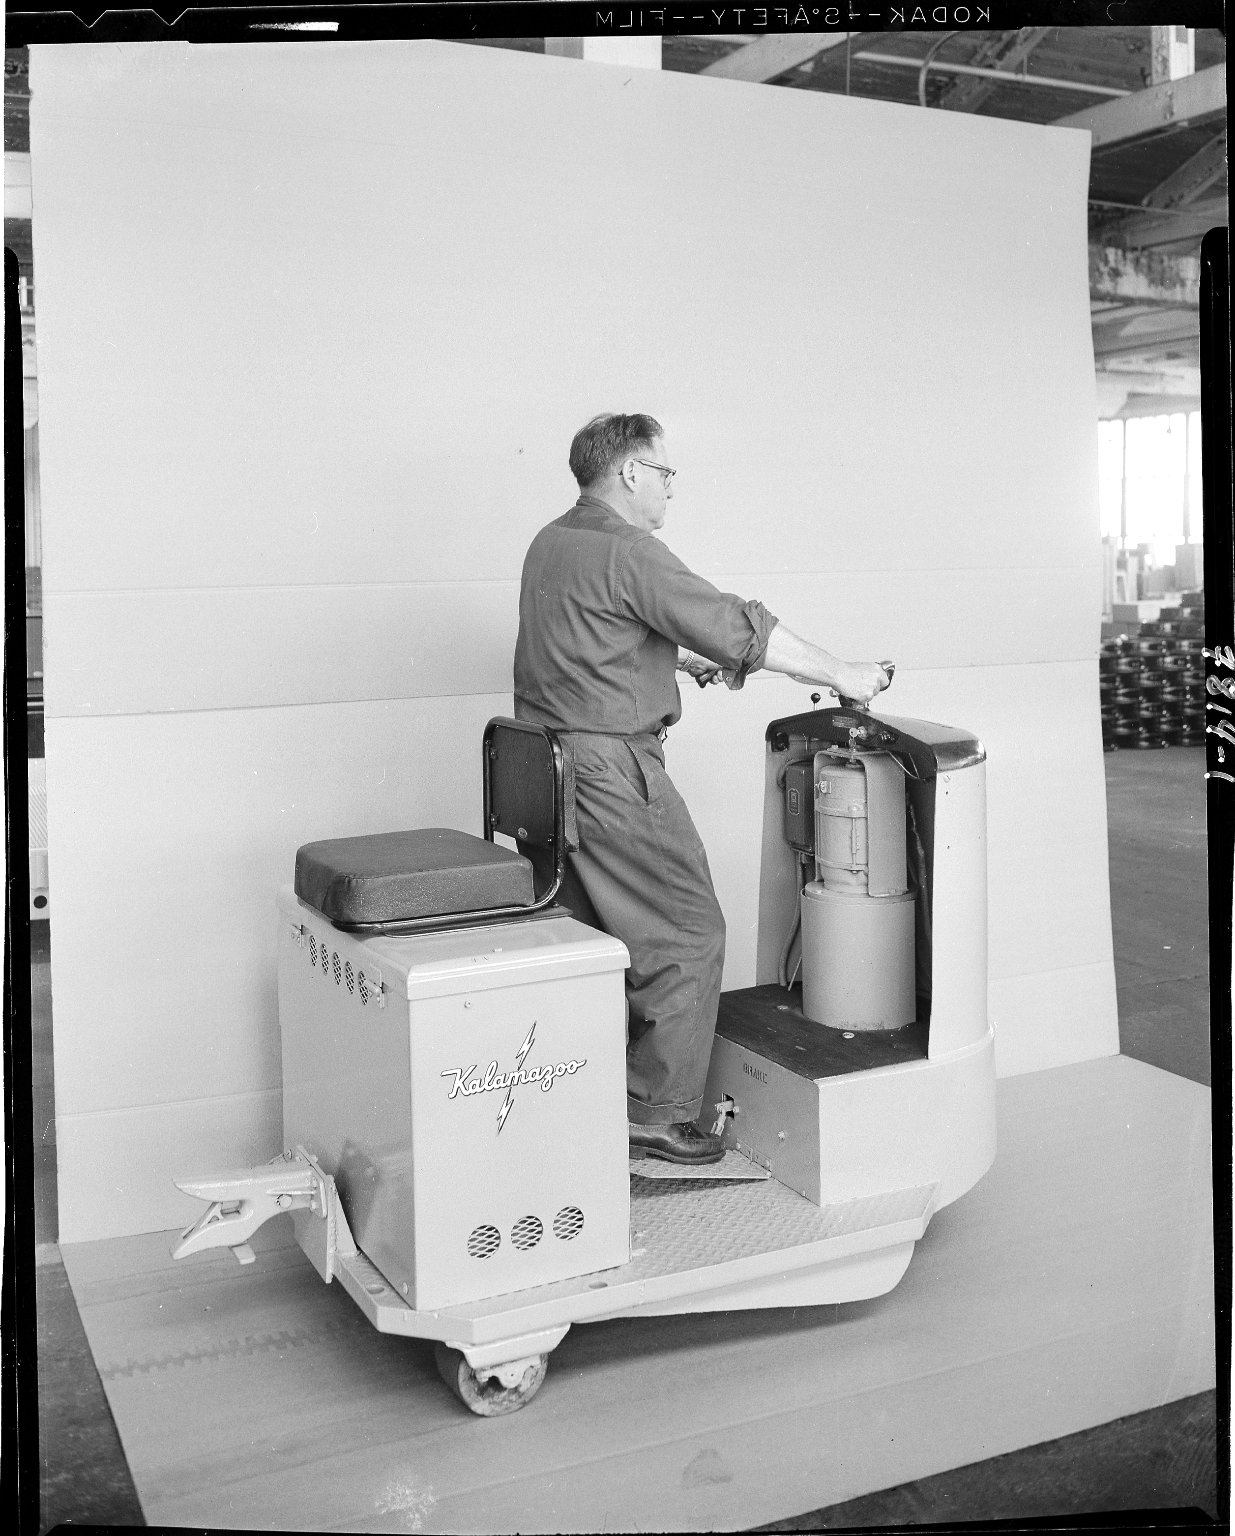 Kalamazoo Manufacturing Company, demonstration of two tractor